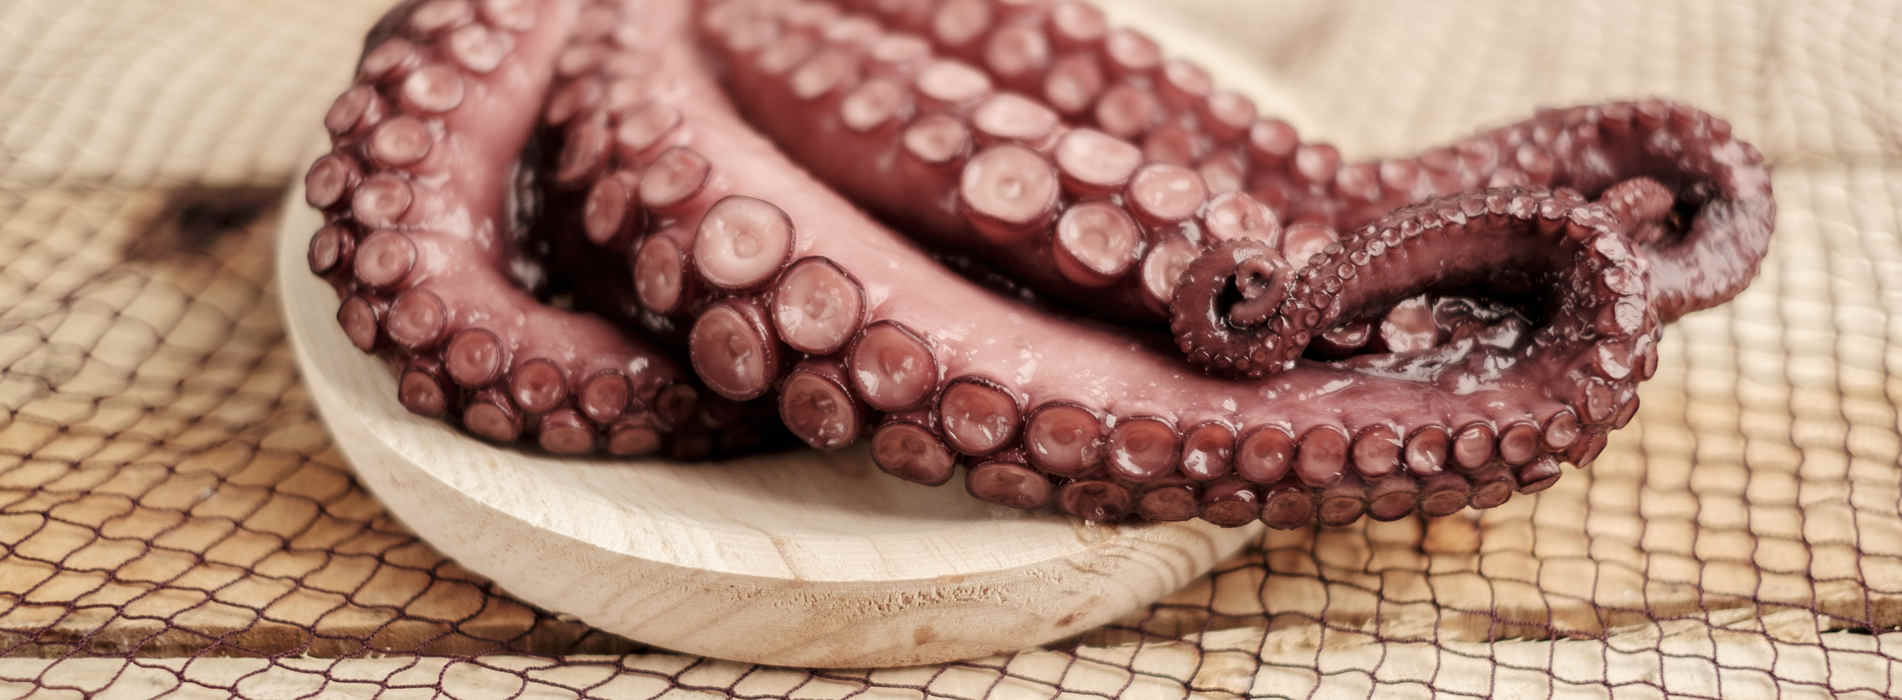 Extra quality Salanort octopus. Top quality Atlantic octopus cooked at low temperature and vacuum-packed. Ready to eat.